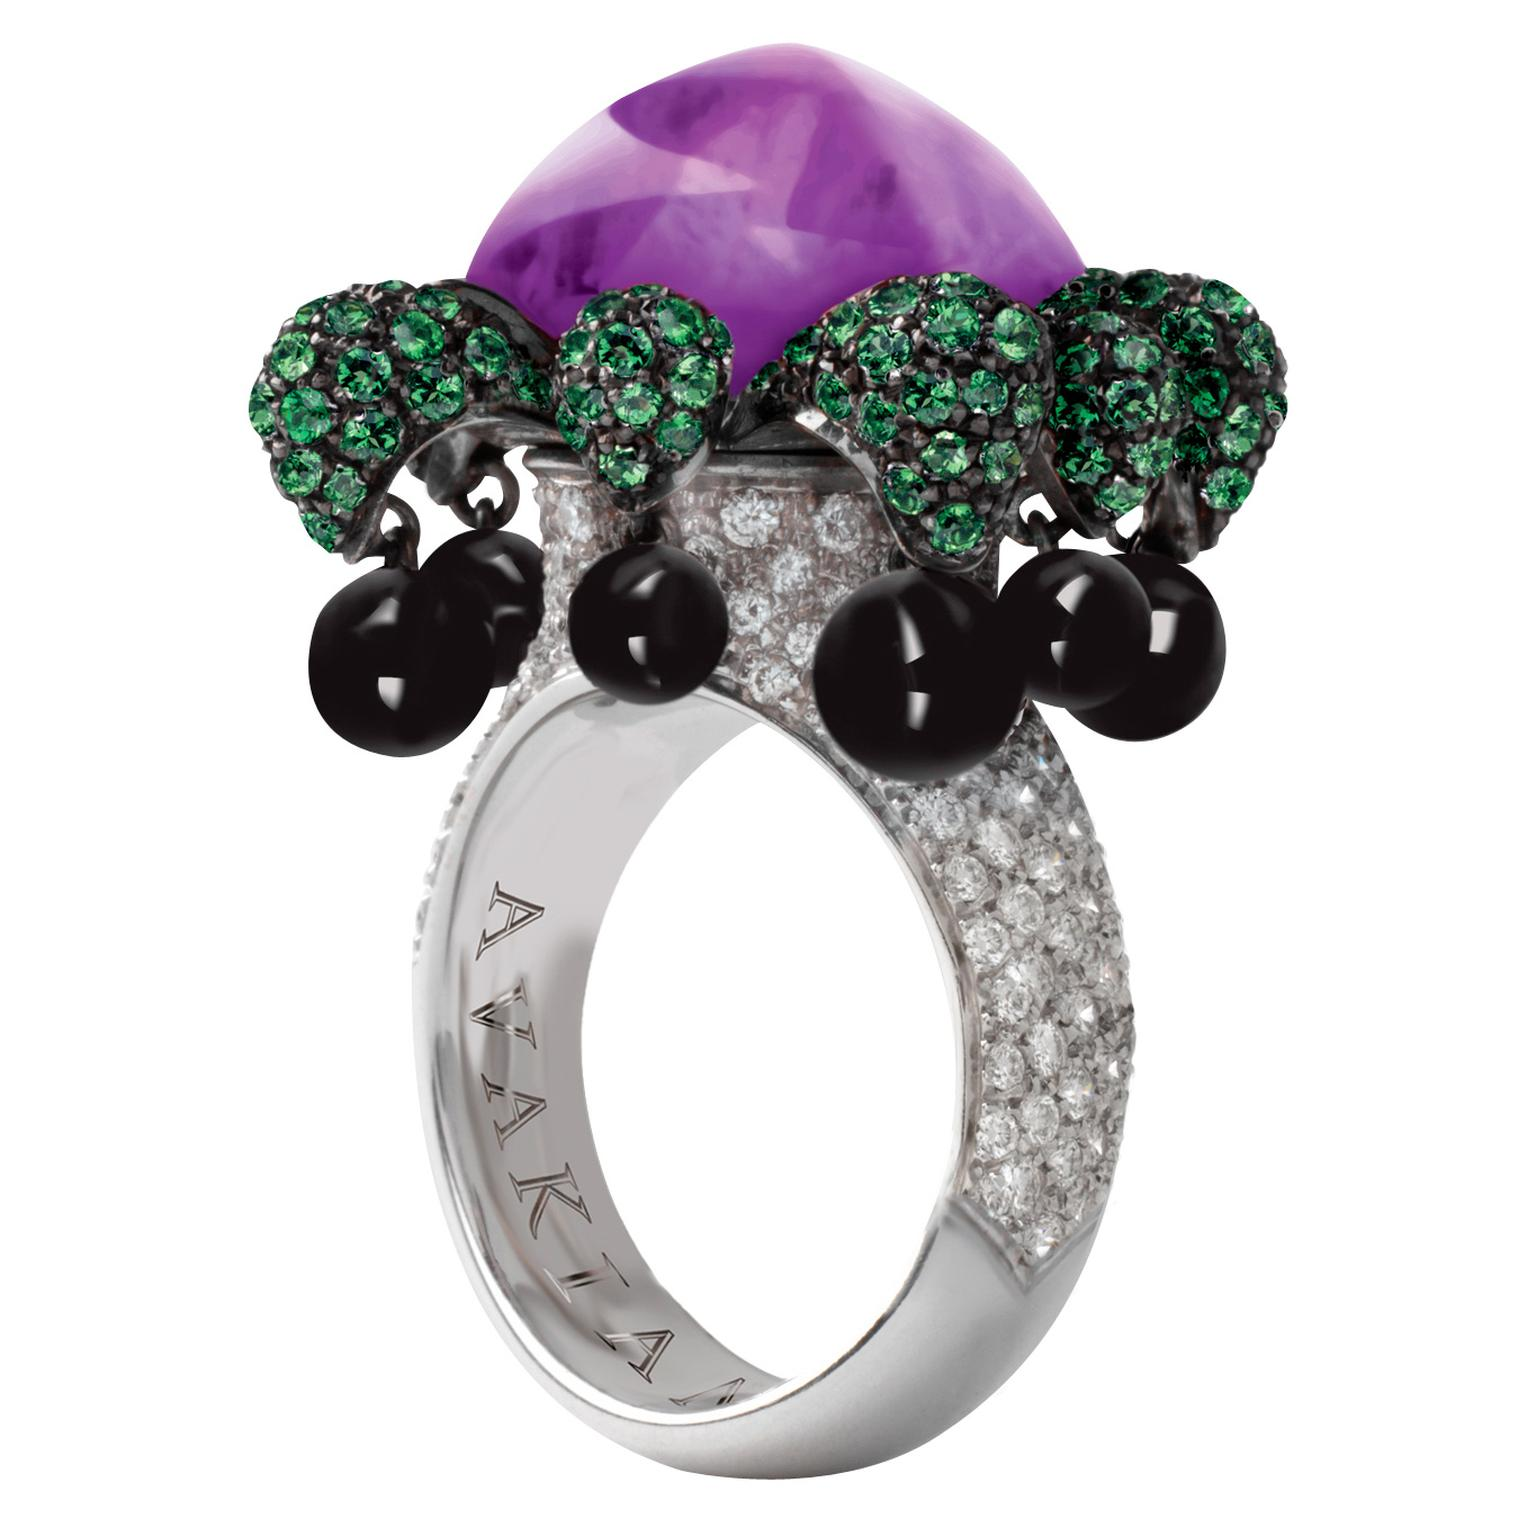 Avakian tsavorite and onyx Joker ring